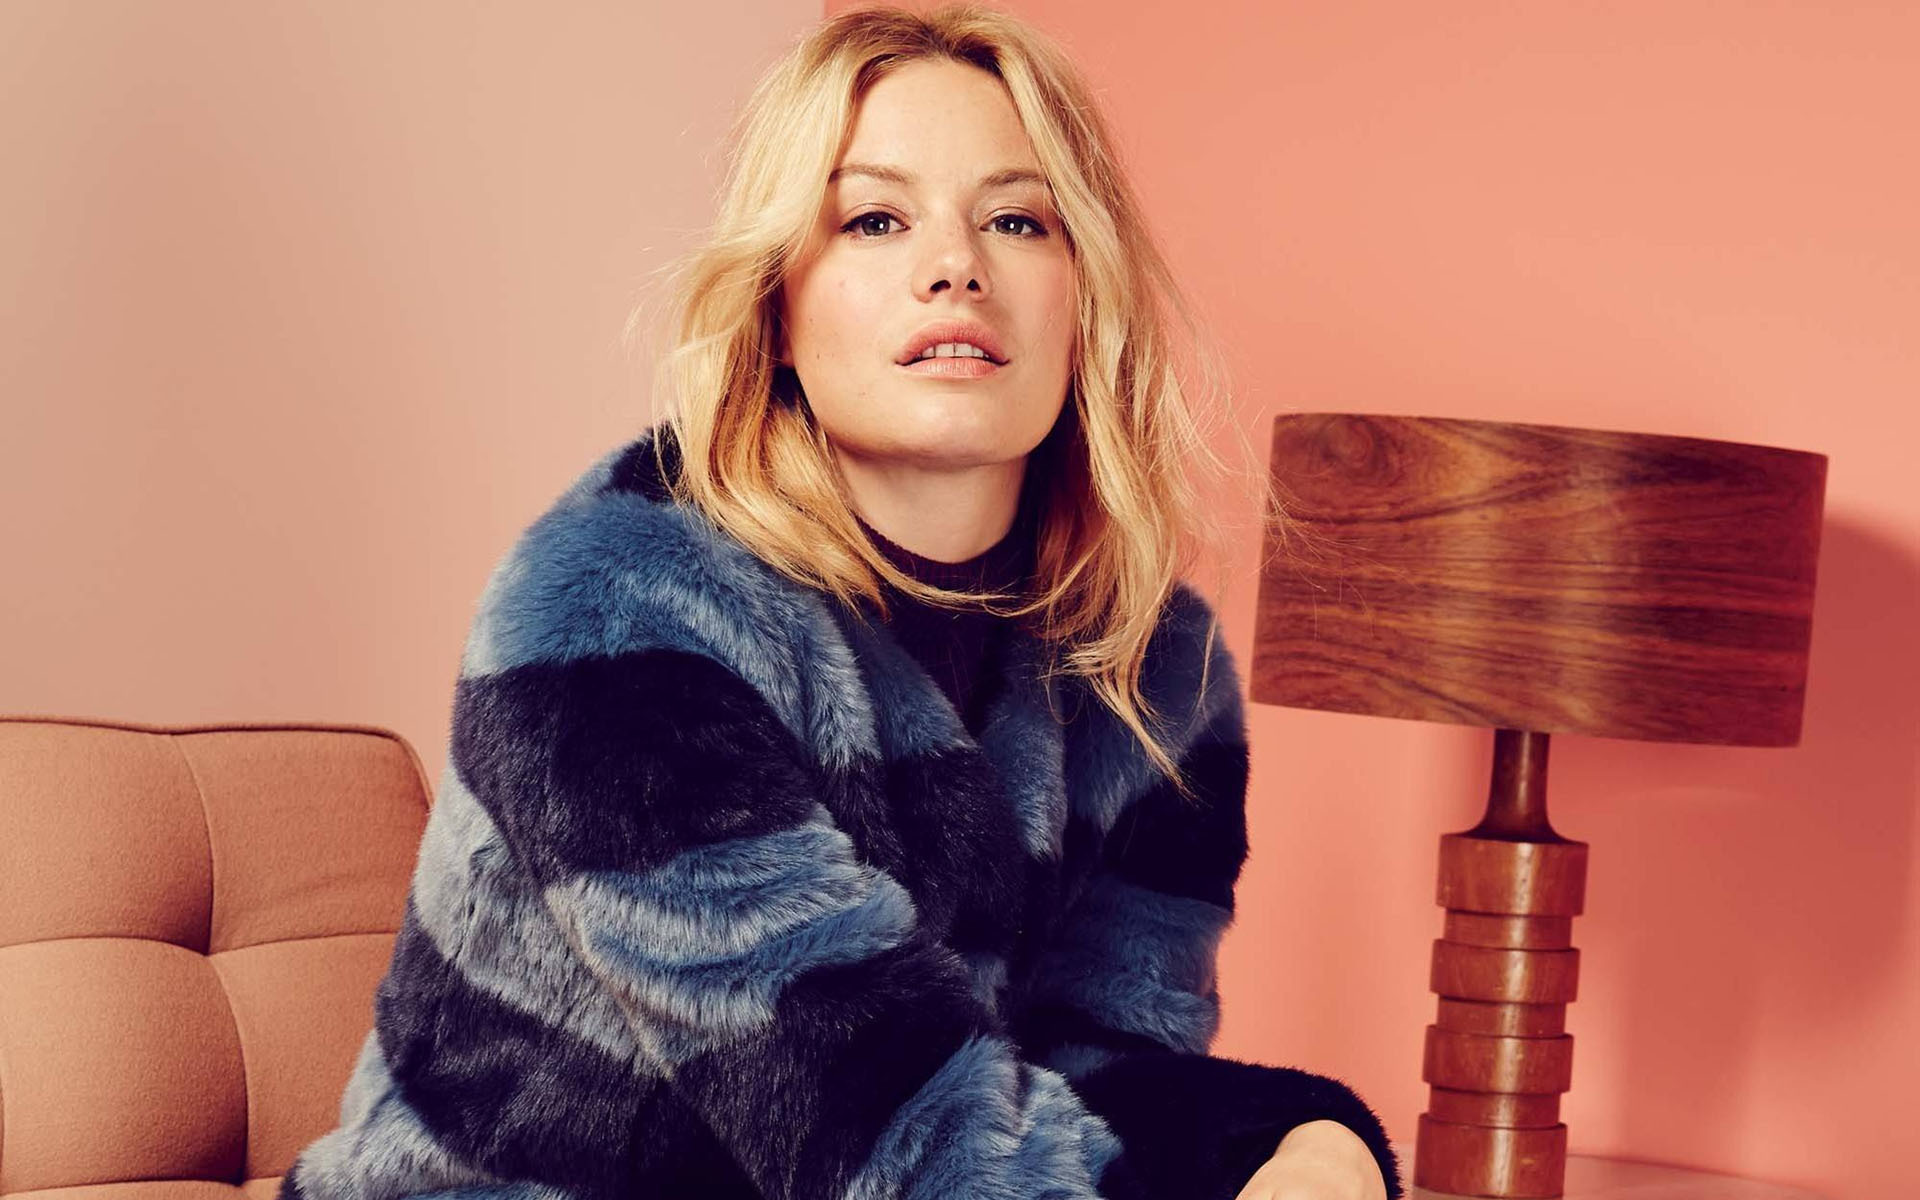 camille rowe model computer wallpaper 60580